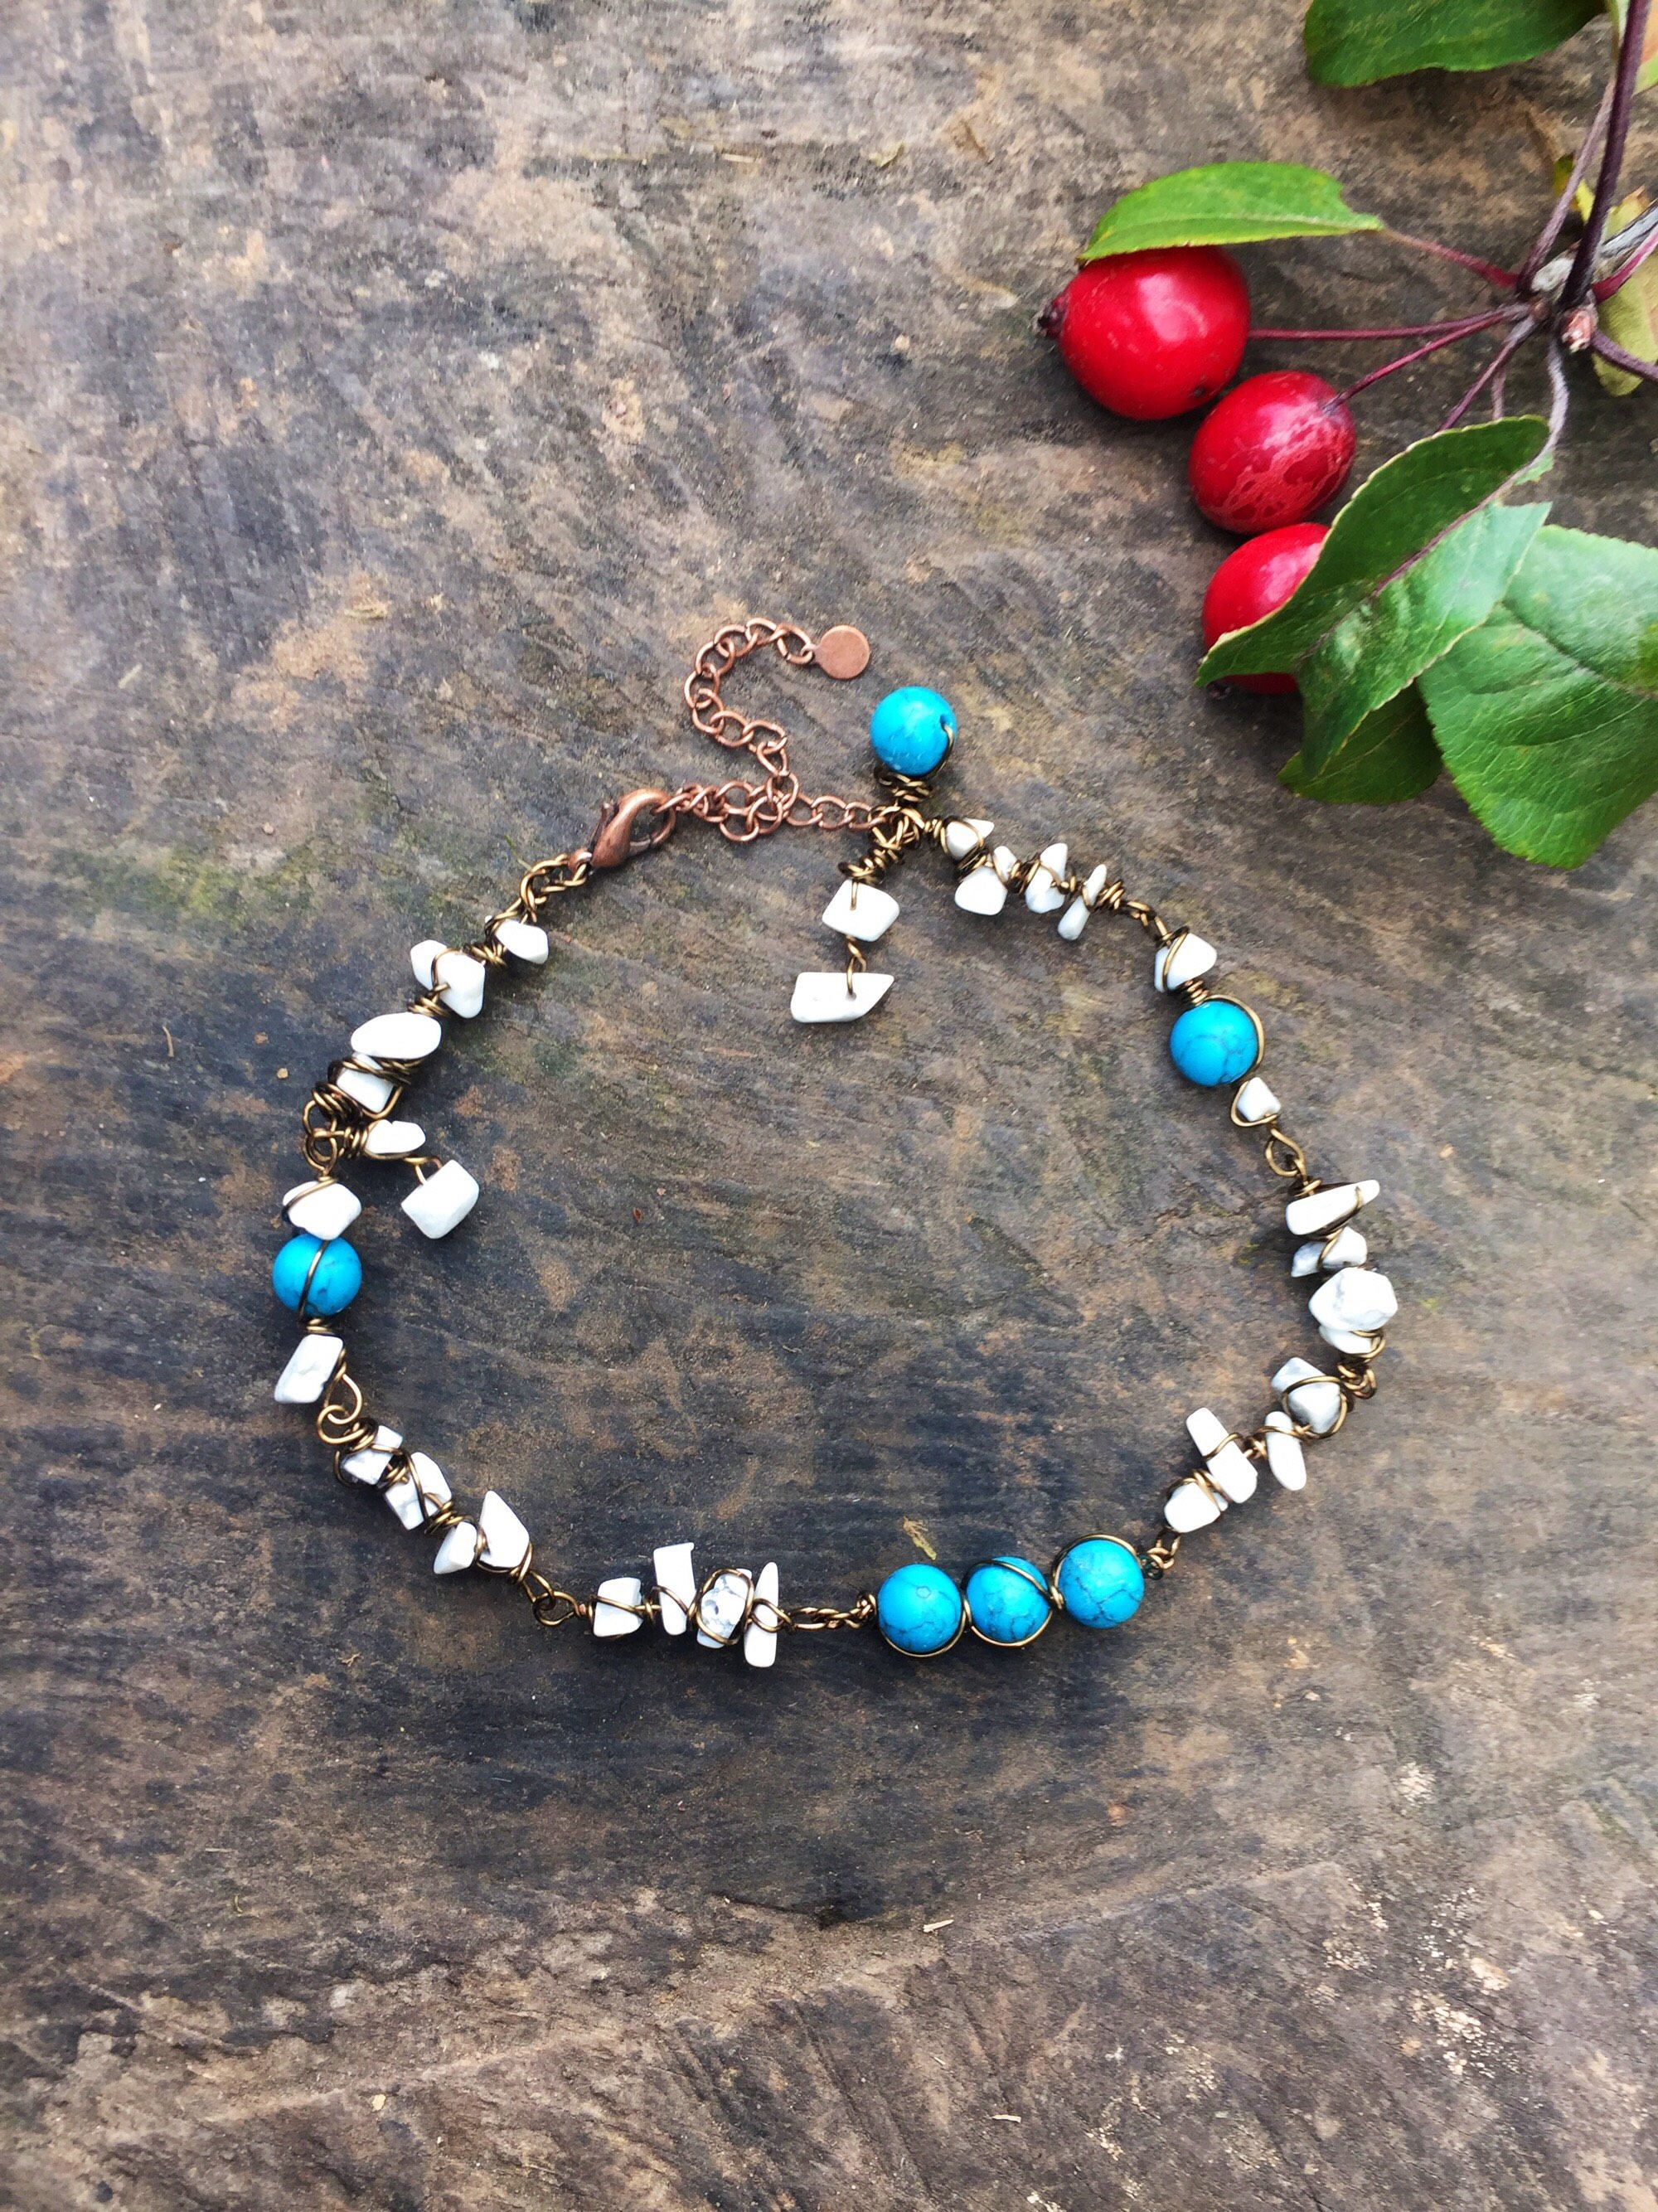 ankle ganesh bracelet jewelry jew lucky anklet collections friend elephant original turquoise products bracelets best